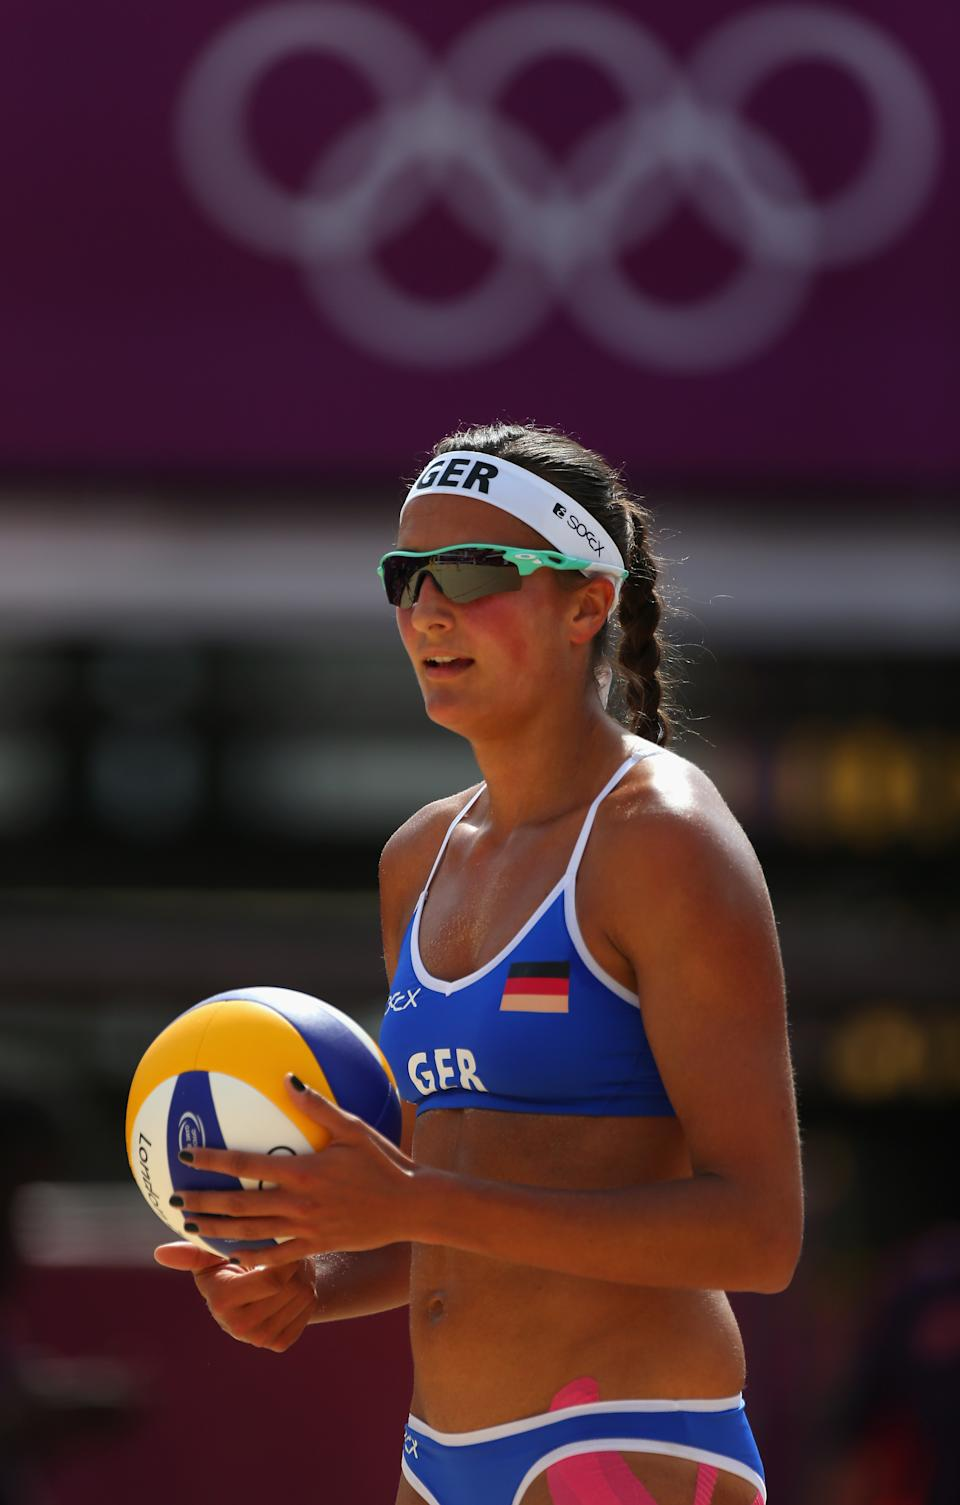 LONDON, ENGLAND - JULY 28: Ilka Semmler of Germany serves during the Women's Beach Volleyball match between Germany and Czech Republic on Day 1 of the London 2012 Olympic Games at Horse Guards Parade on July 28, 2012 in London, England. (Photo by Alexander Hassenstein/Getty Images)